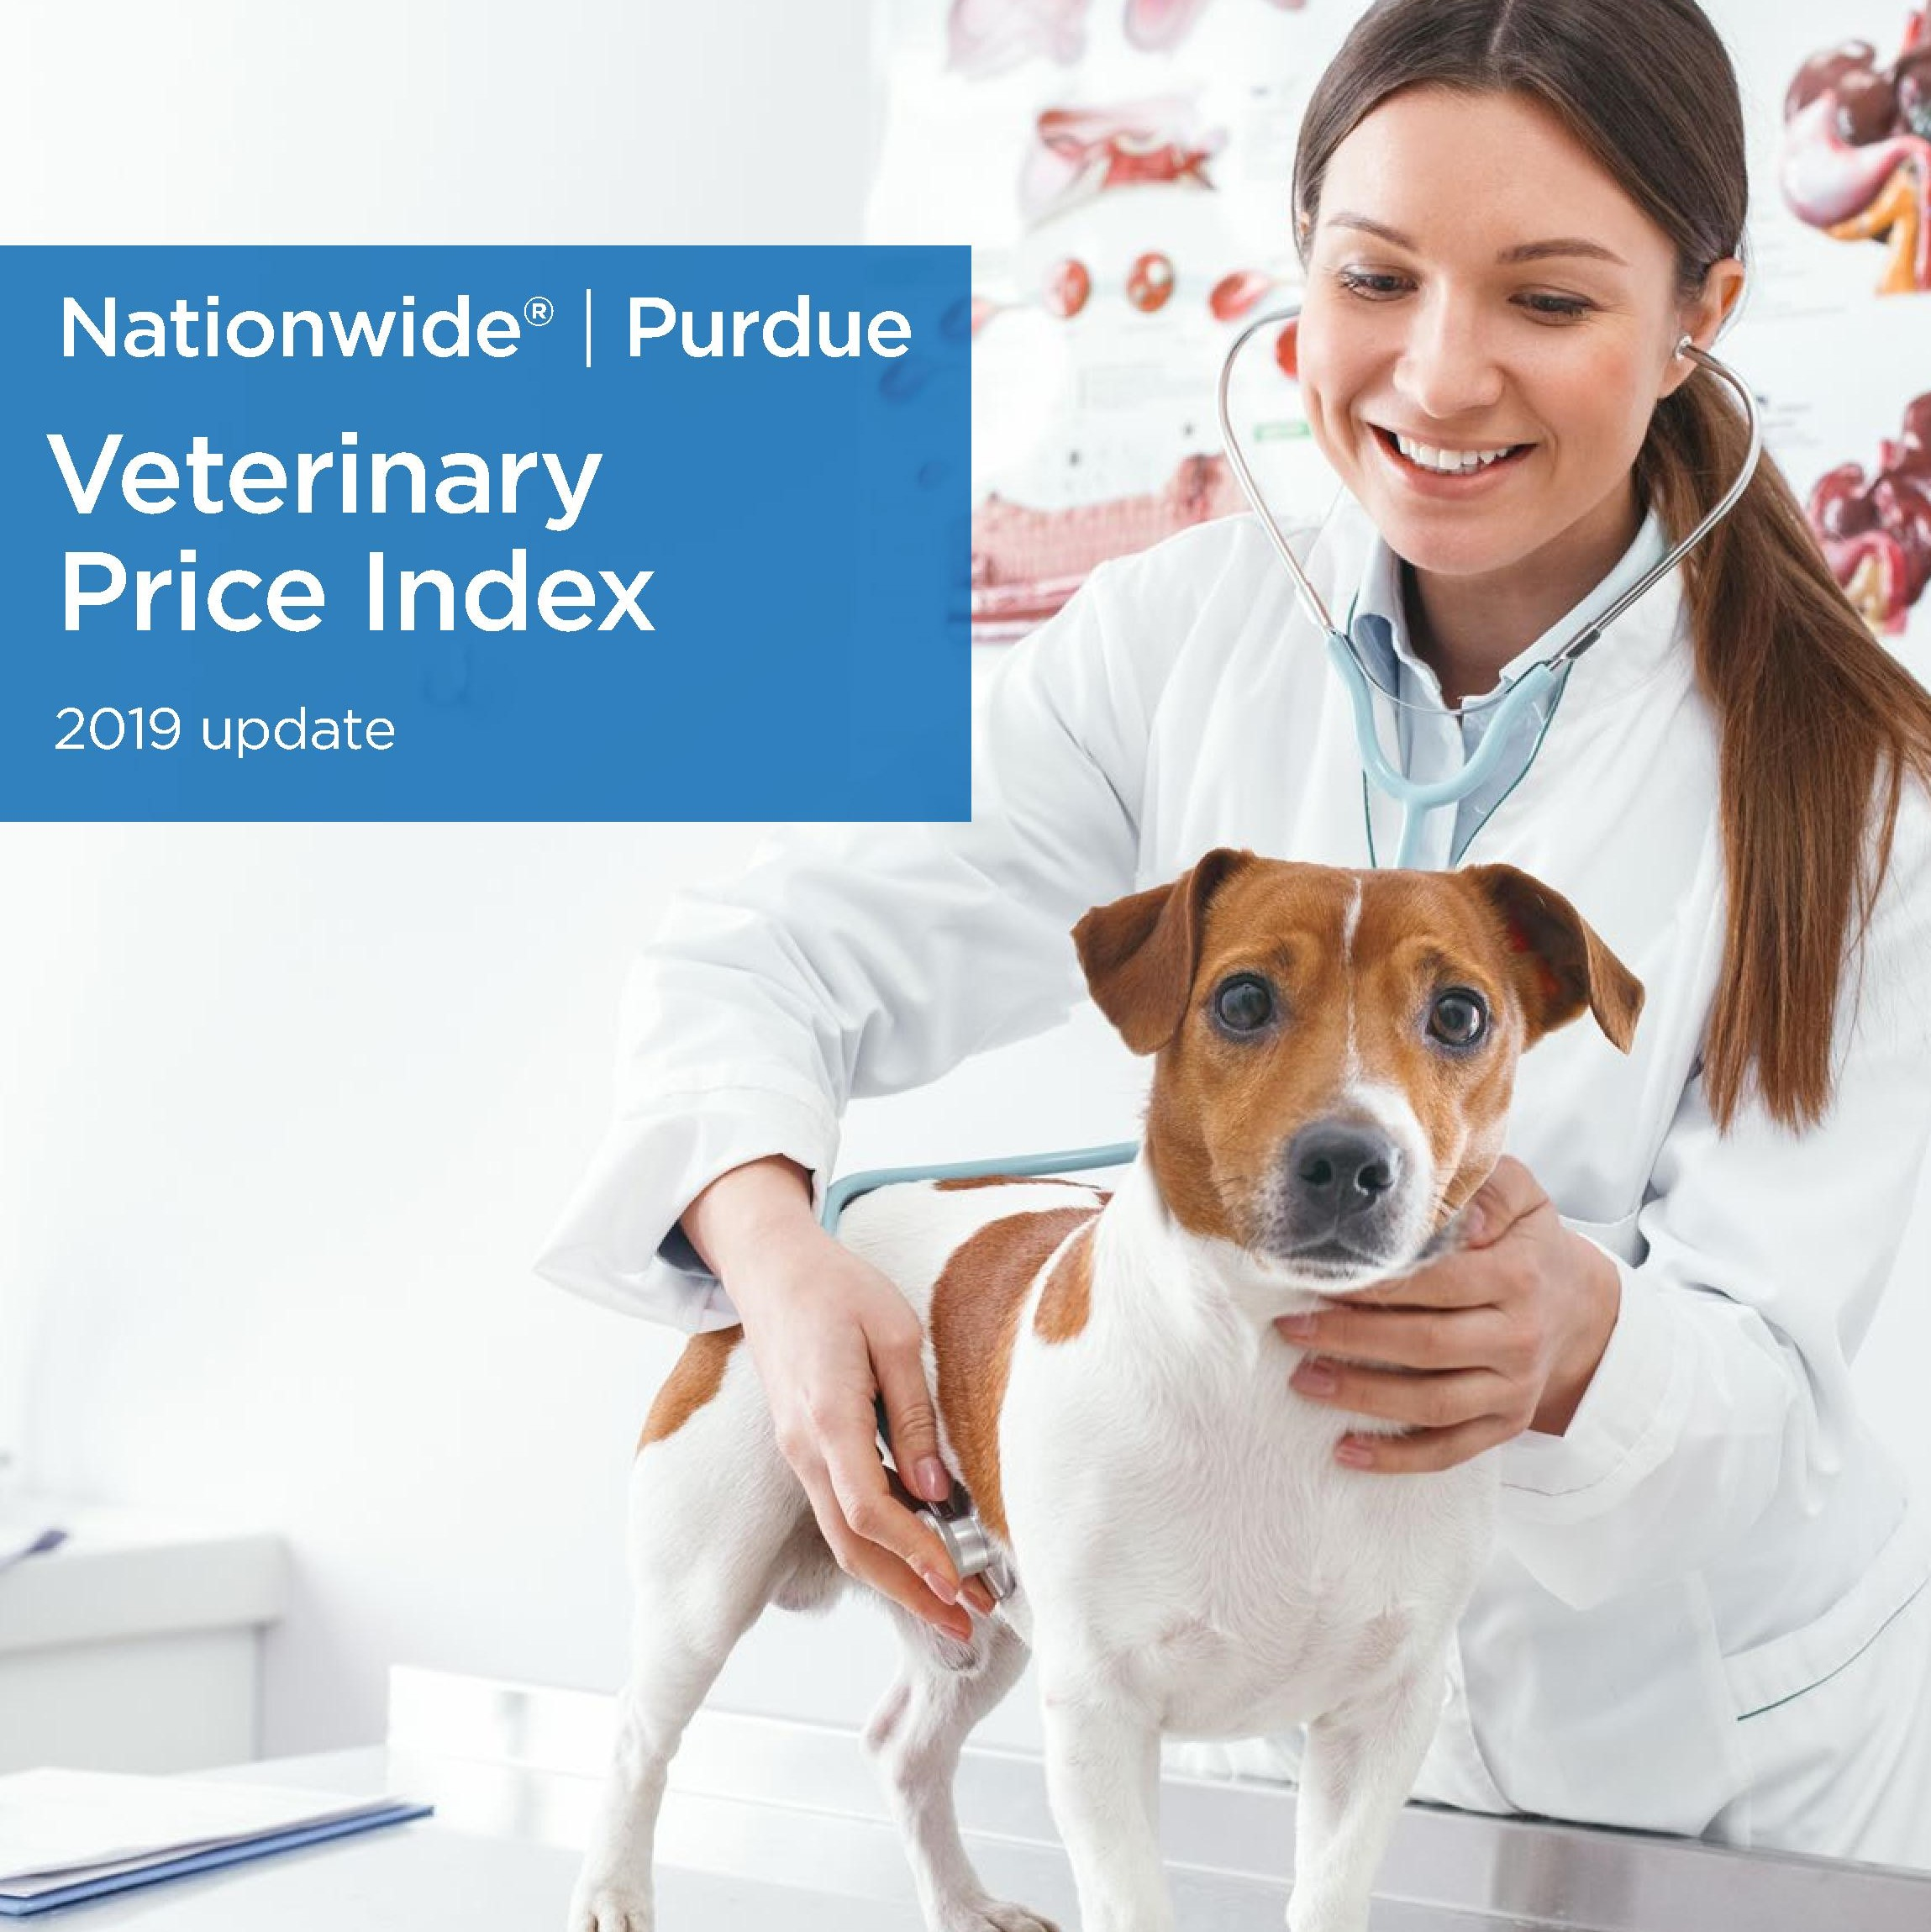 Nationwide Purdue Veterinary Price Index